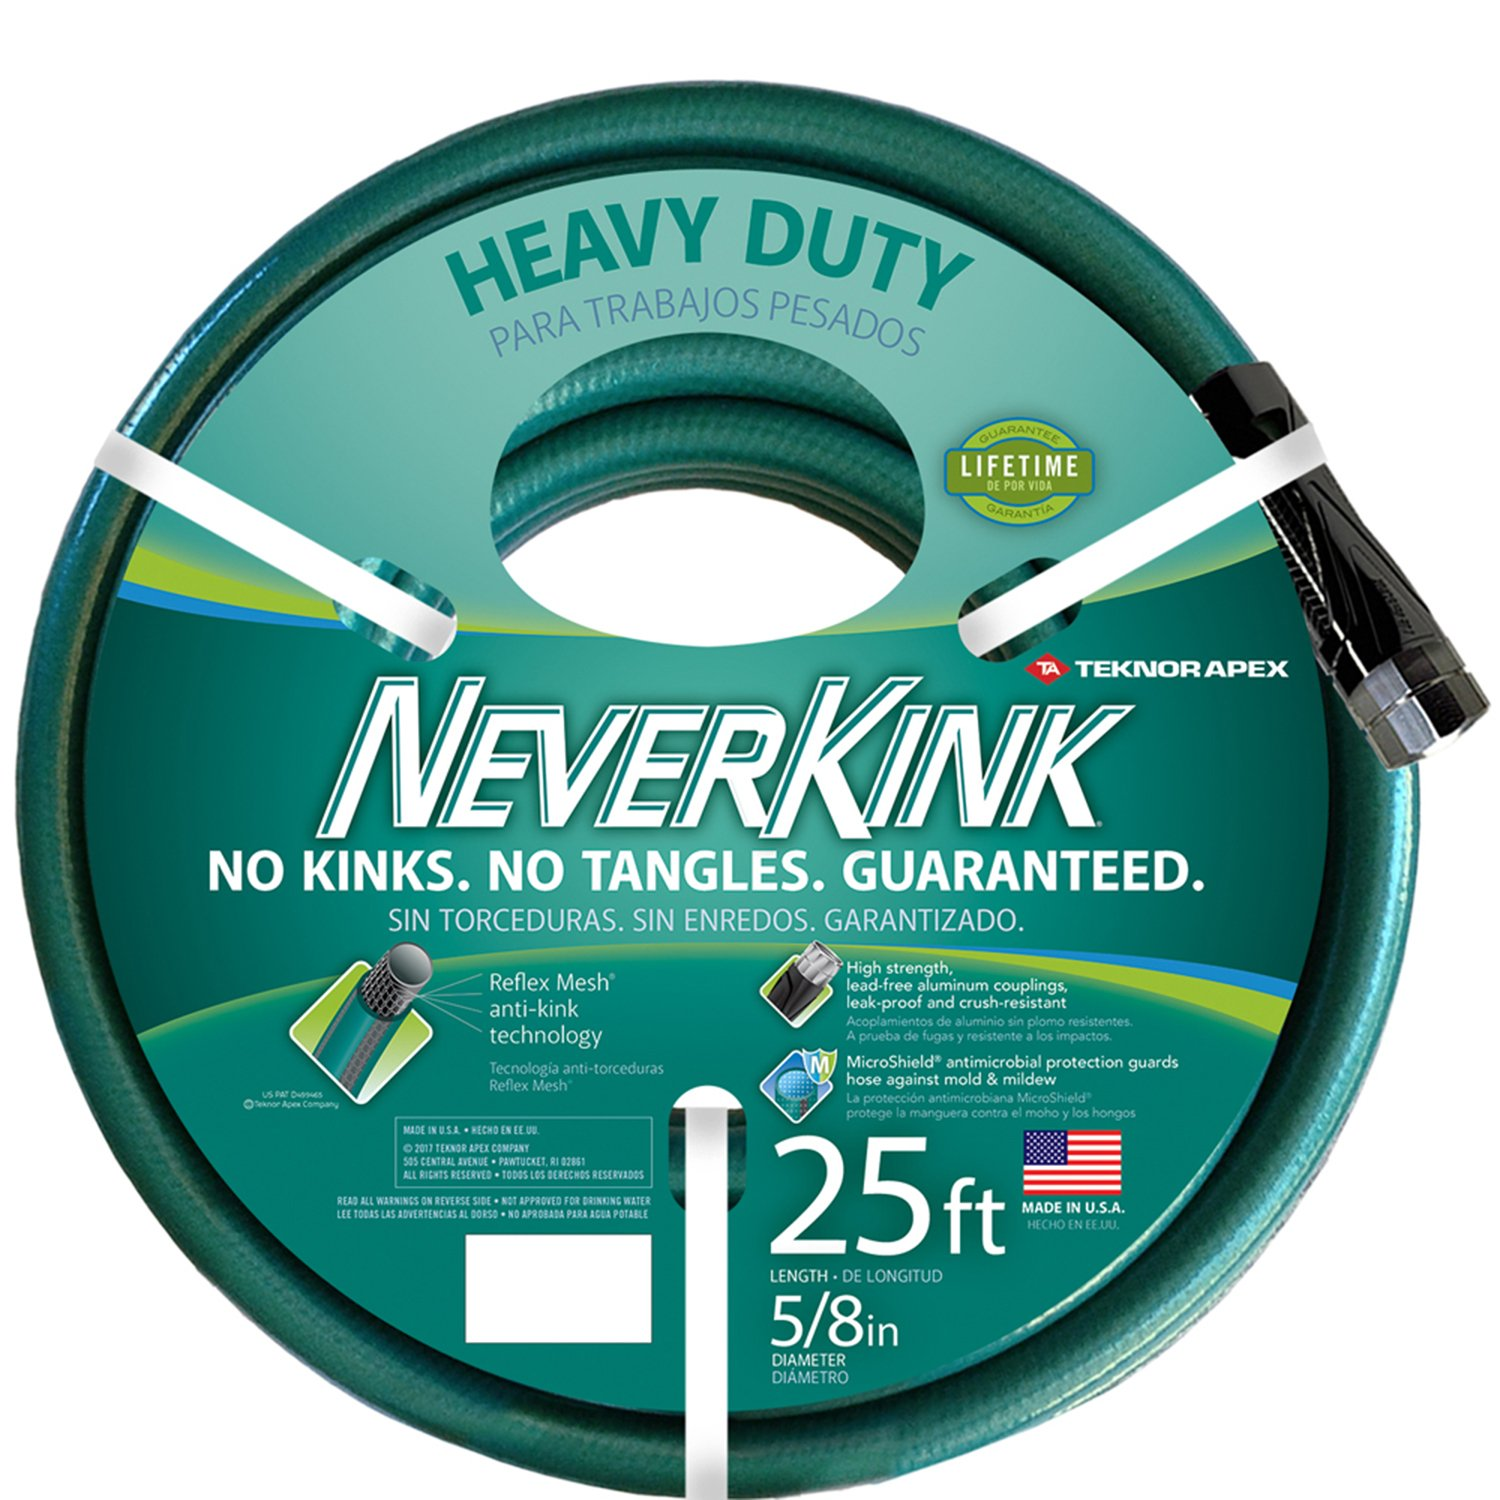 75fdc1bce79e Teknor Apex NeverKink 8615-25, Heavy Duty Garden Hose, 5/8-Inch by 25-Feet